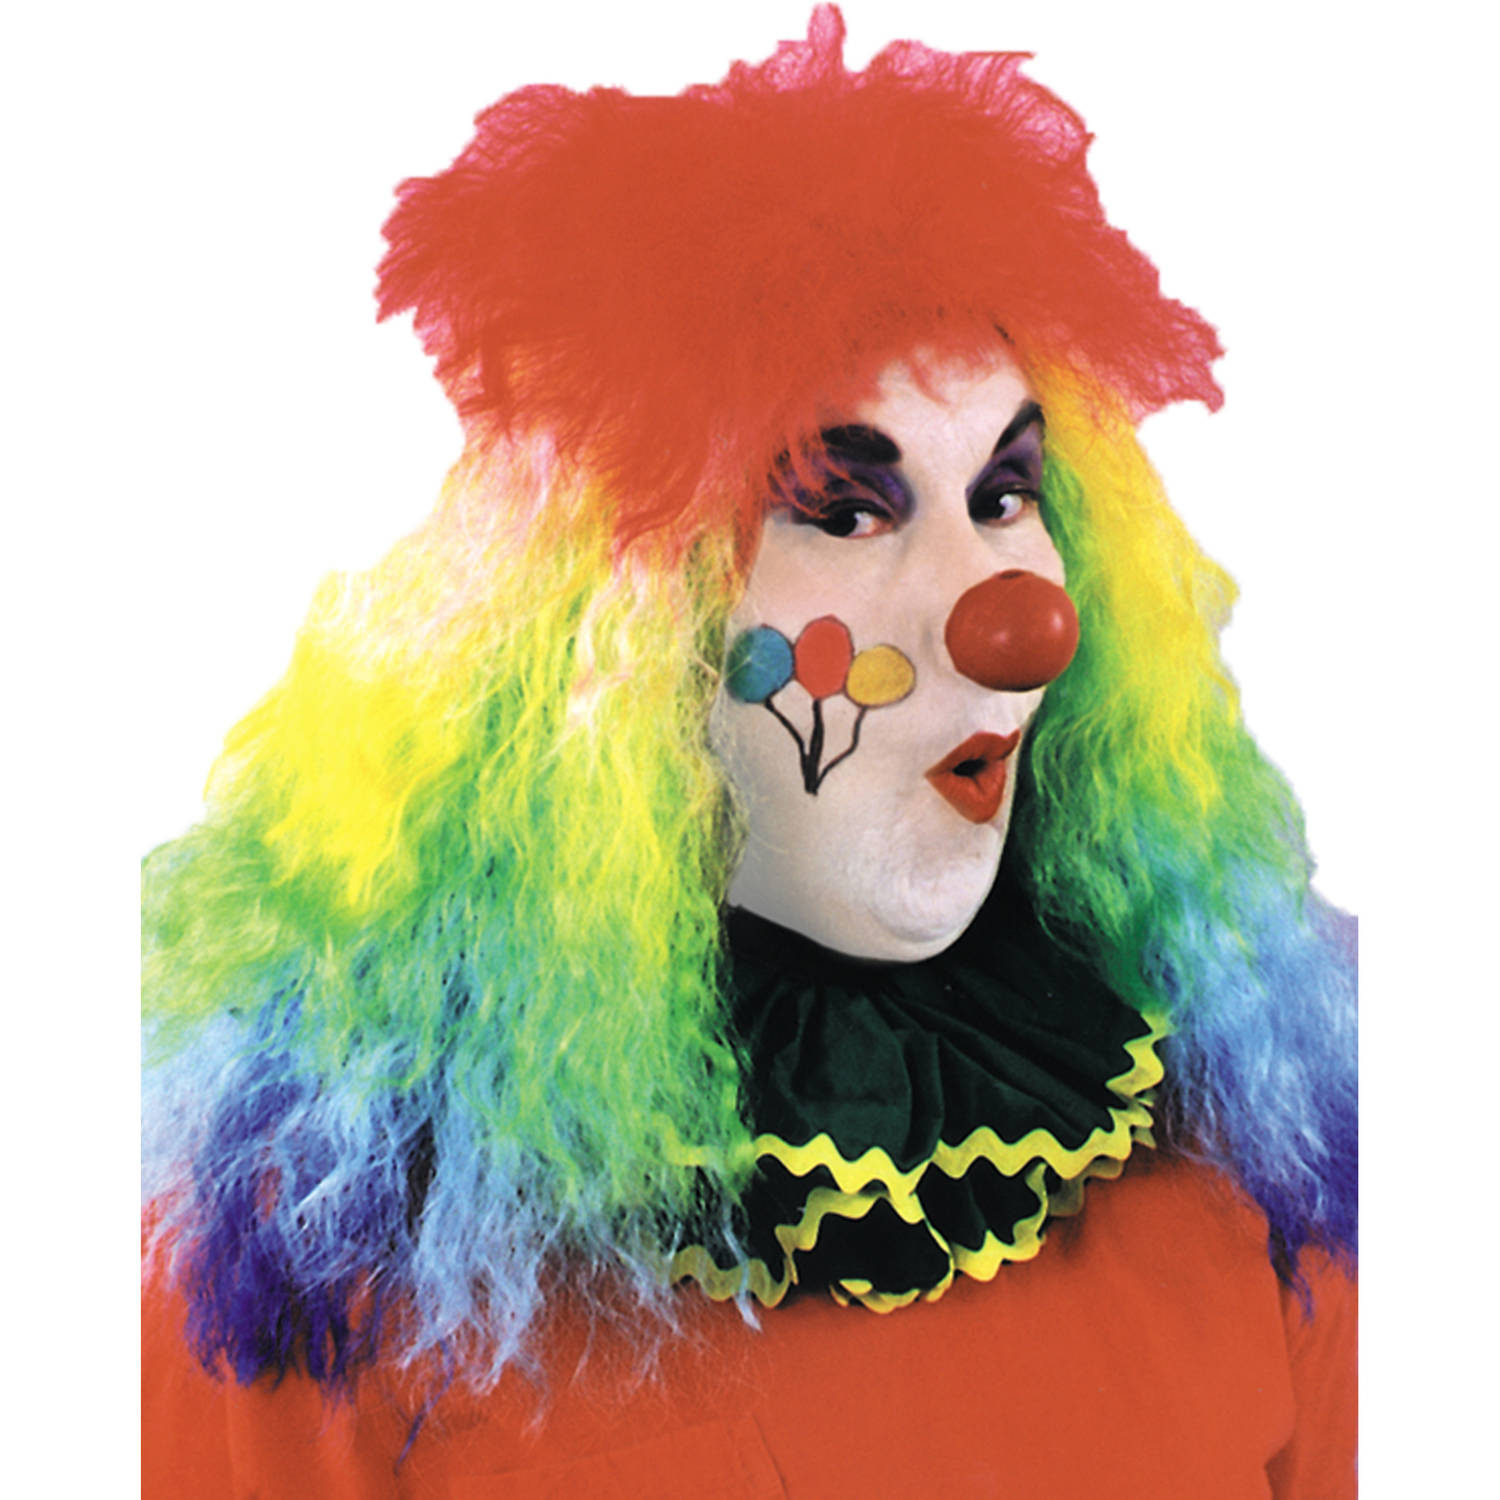 Rainbow Clown Wig Adult Halloween Accessory